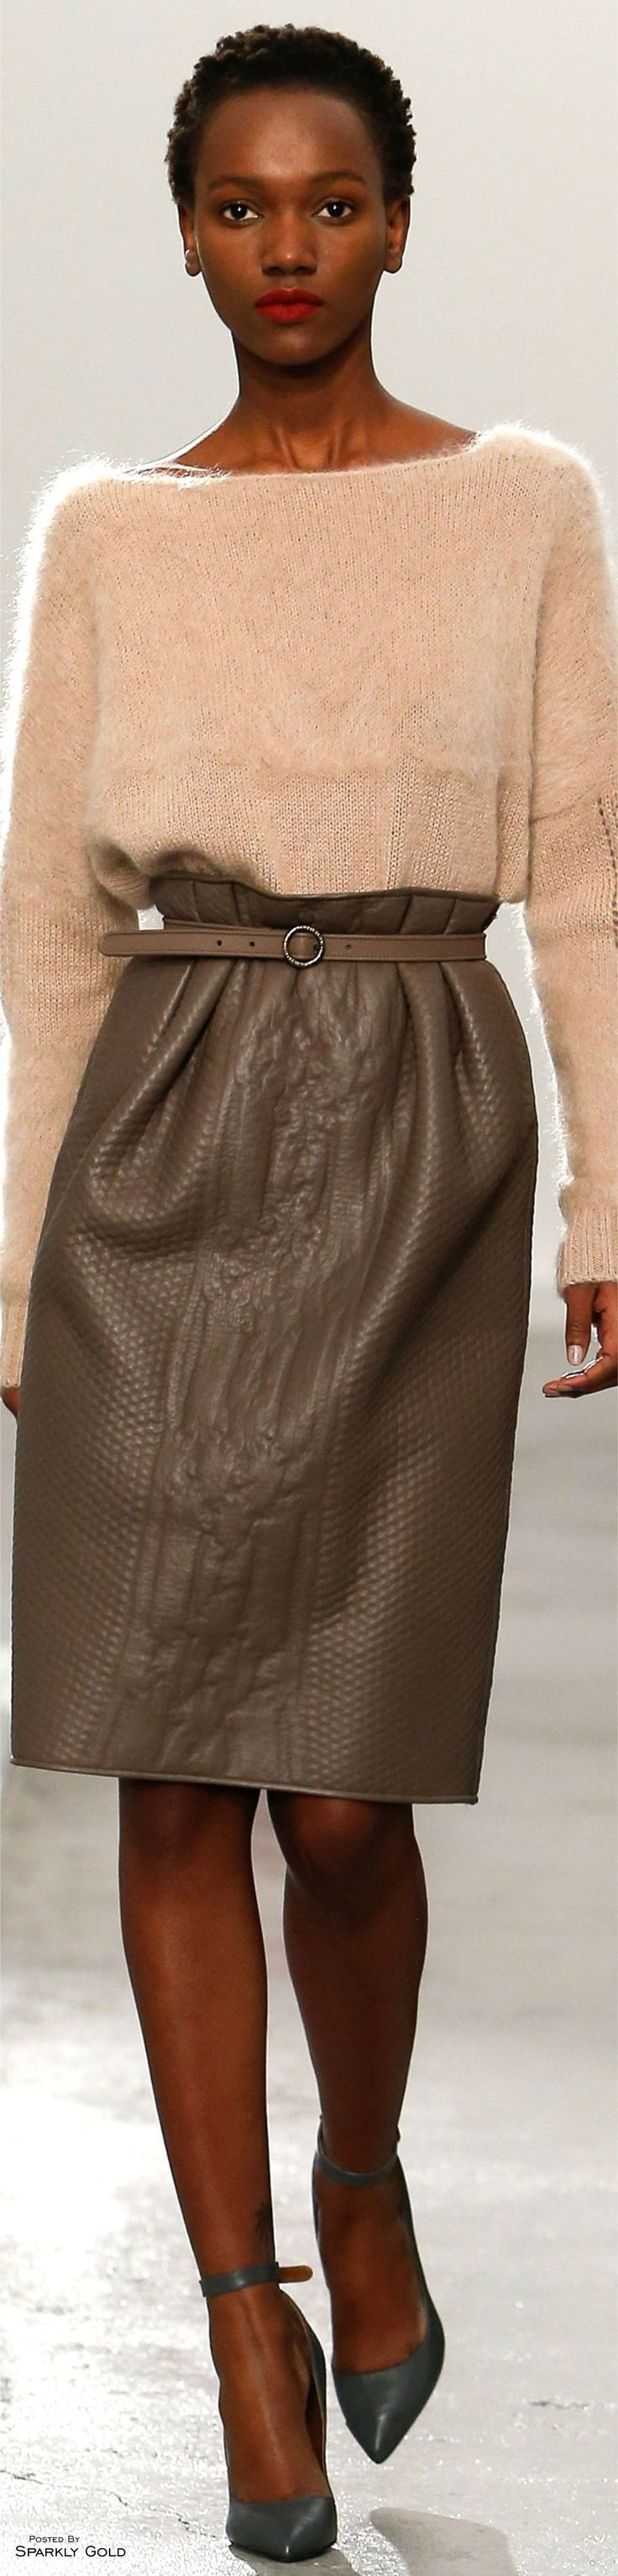 7/25/16 I choose this image of a leather skirt because of how interesting it was that it was stamped upon with different textures. Agnona F-16 RTW: sweater, paper bag waist leather skirt.